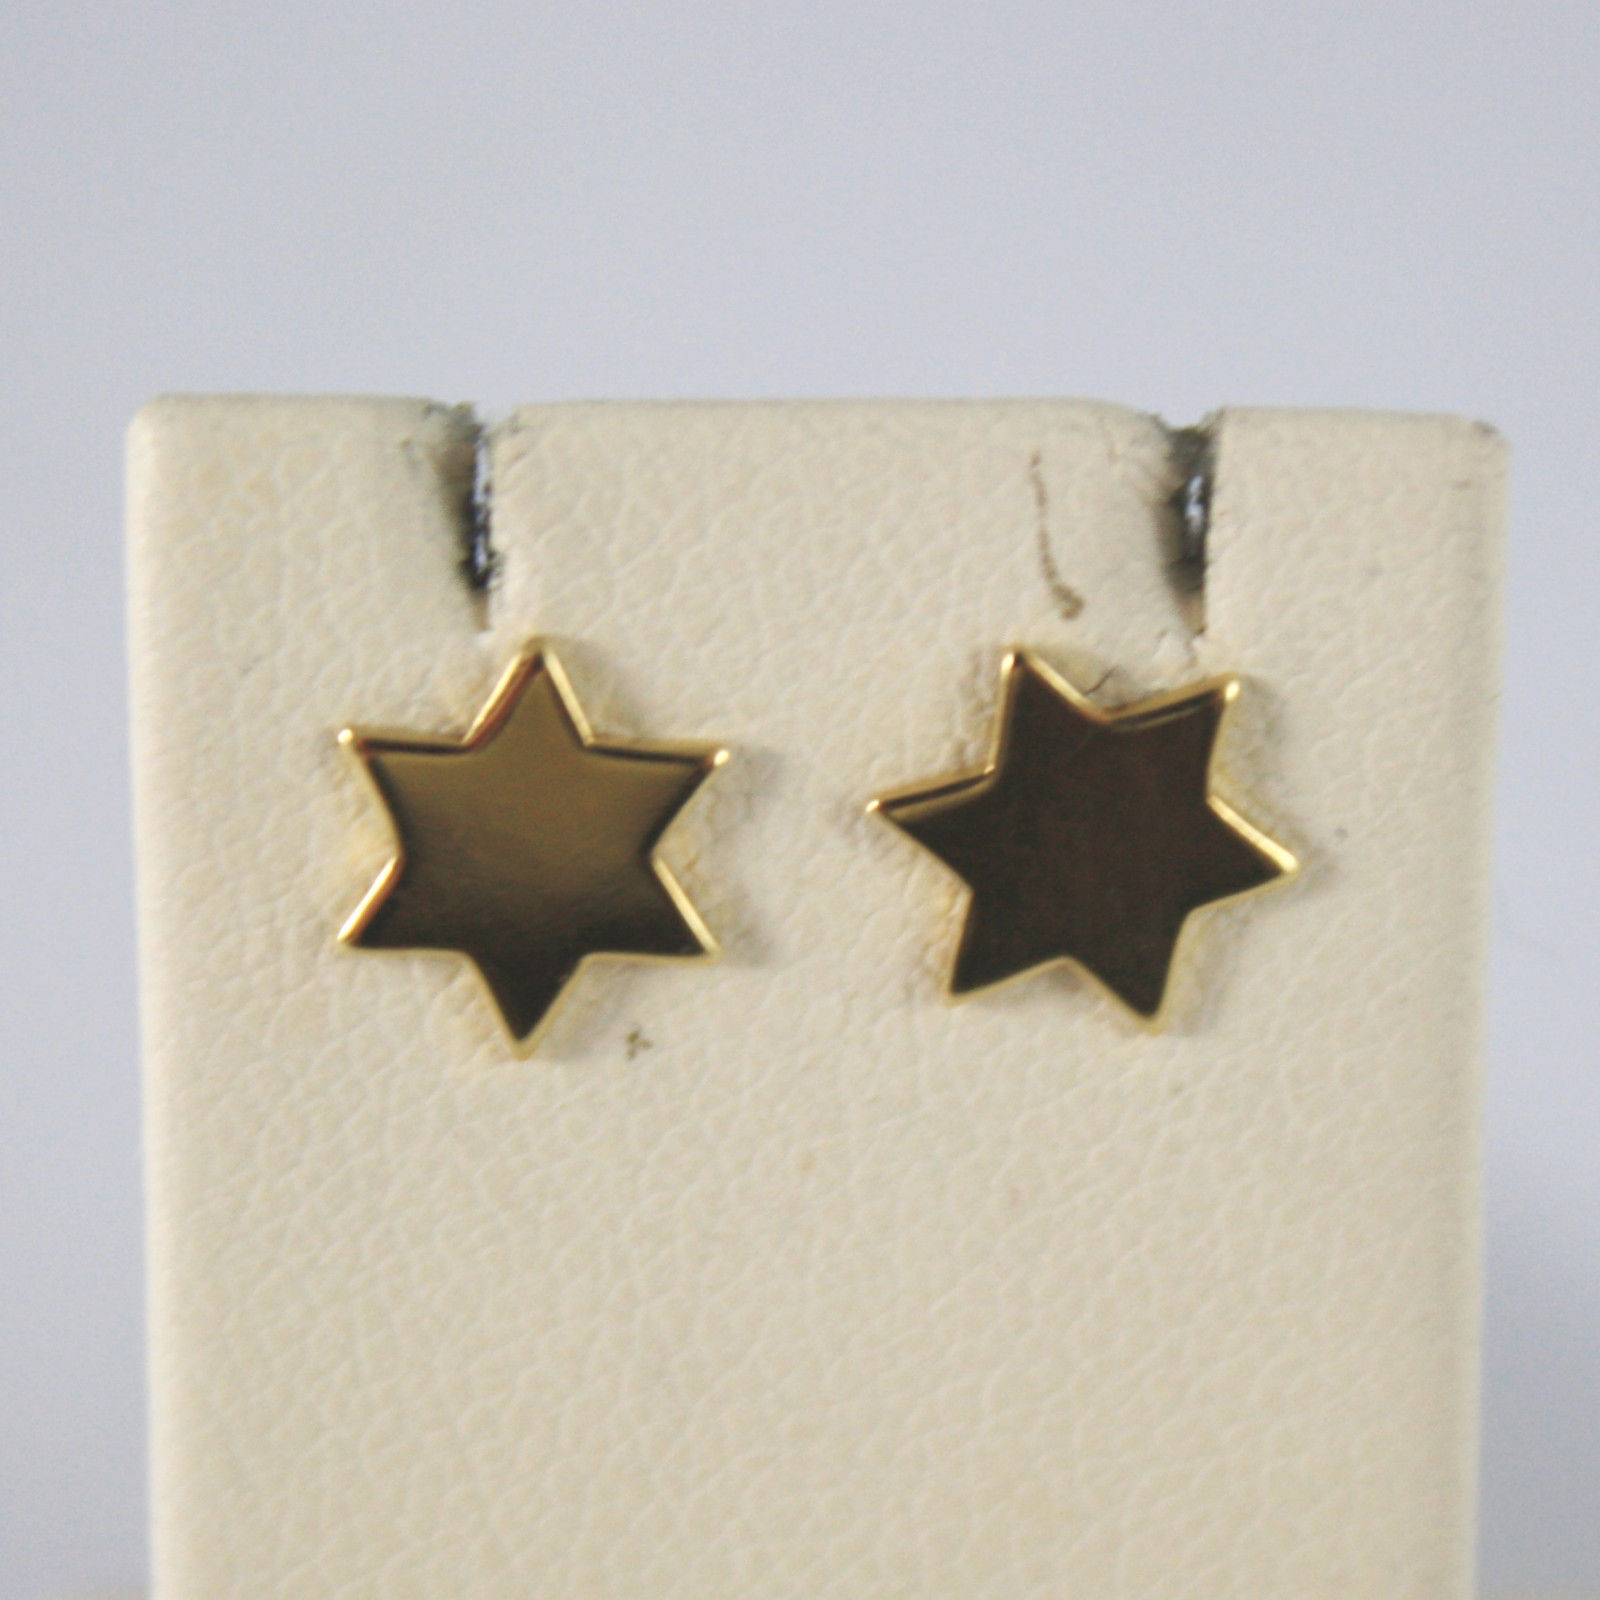 SOLID 18KT.YELLOW GOLD EARRINGS, WITH FLAT STARS, WIDTH 0,28 IN MADE IN ITALY.